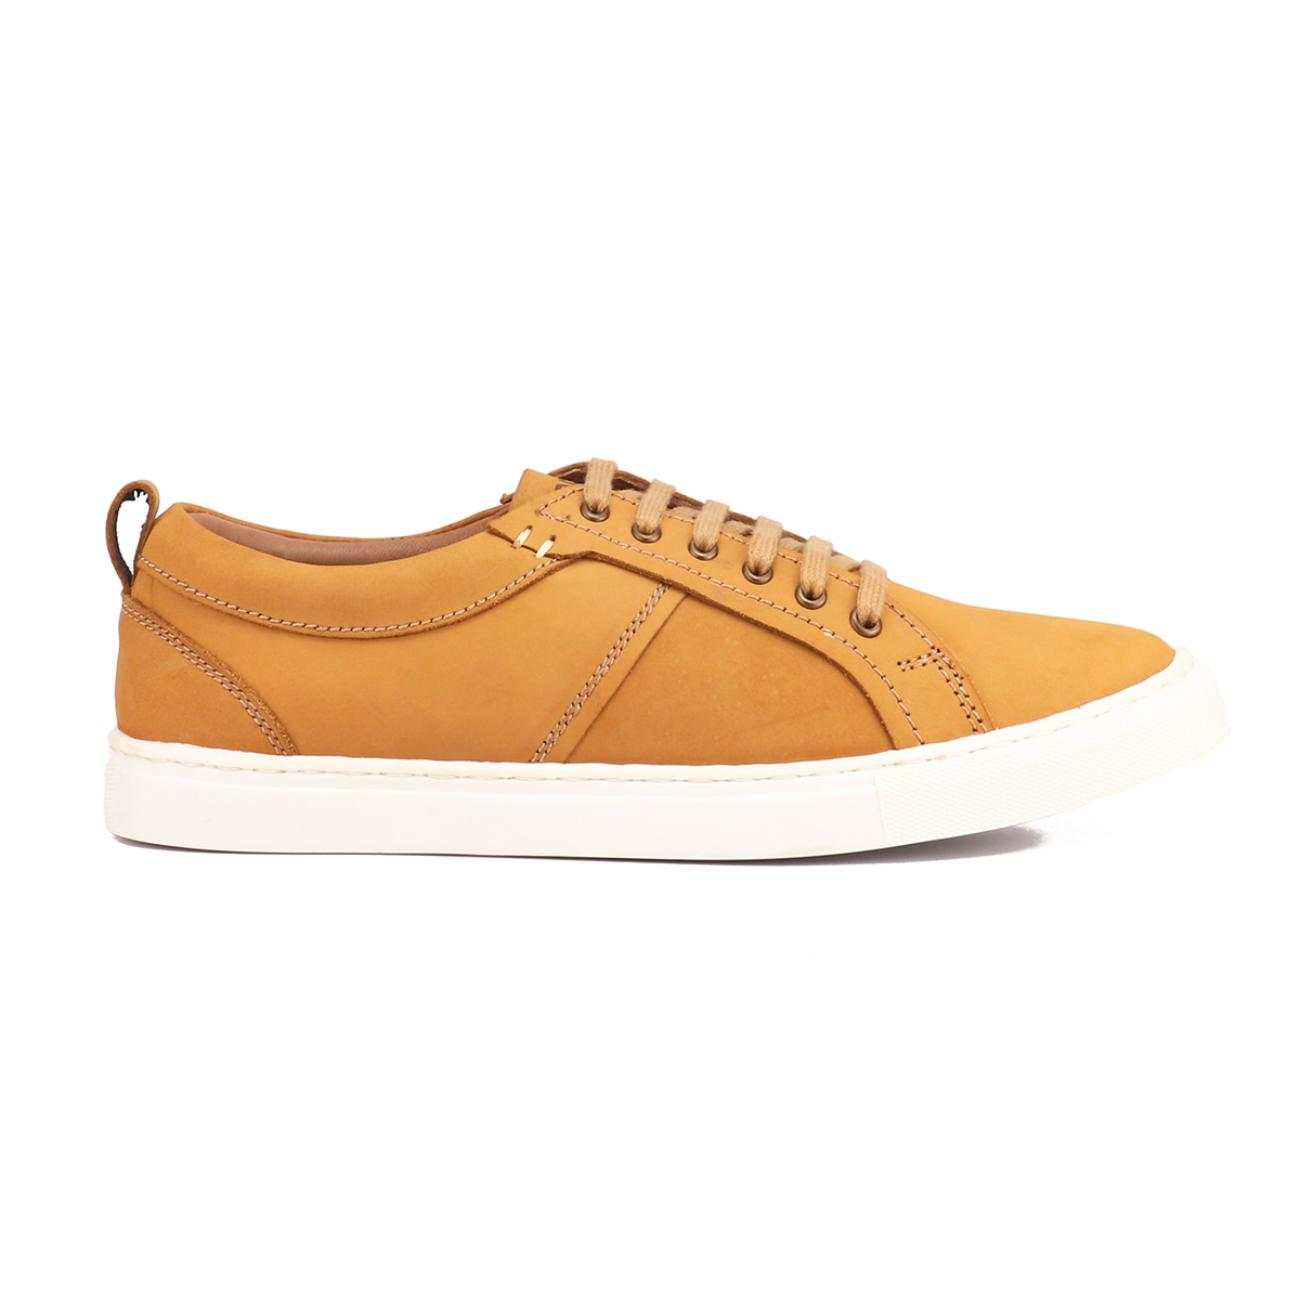 rust casual sneakers side view_2